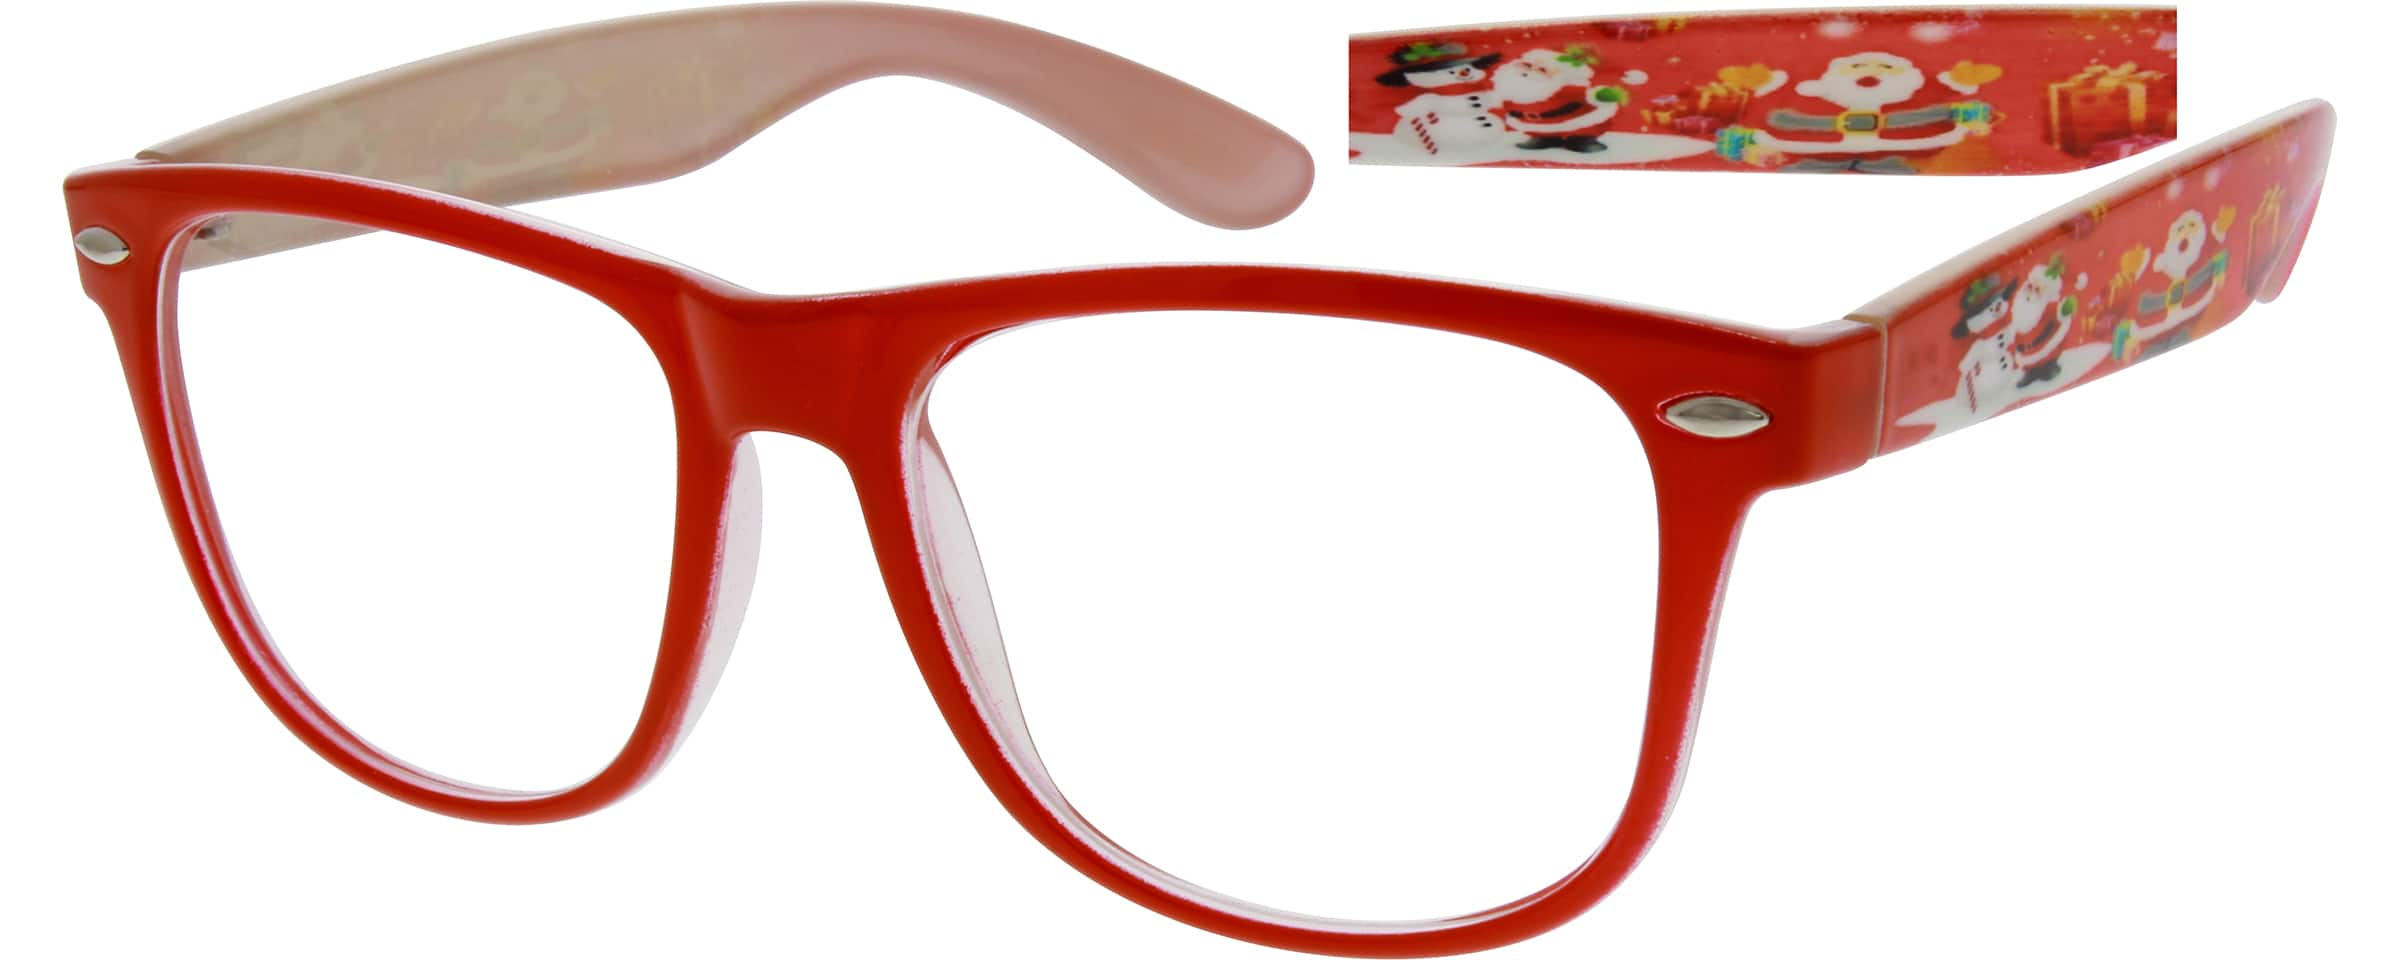 Holiday Glasses | Frame Friday | The Zenni Blog